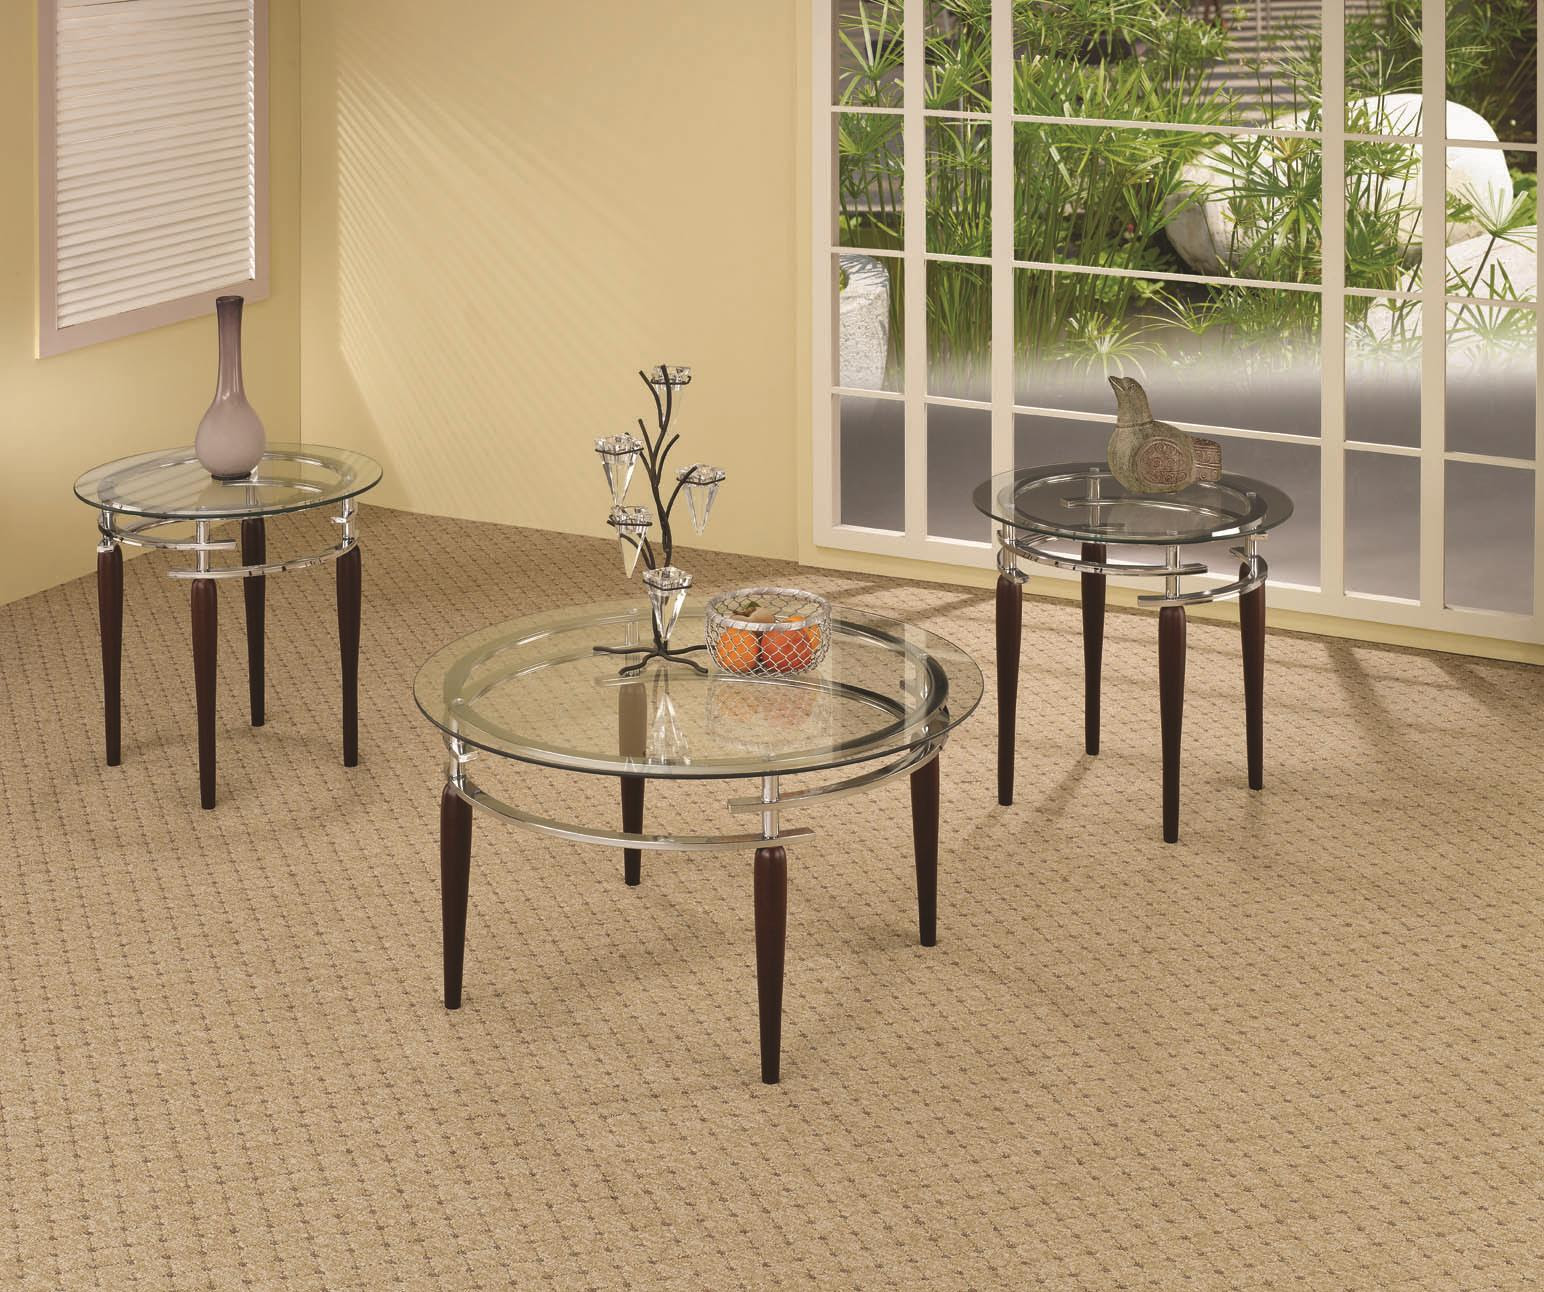 3 Piece Living Room Glass Table Set | Zion Modern House